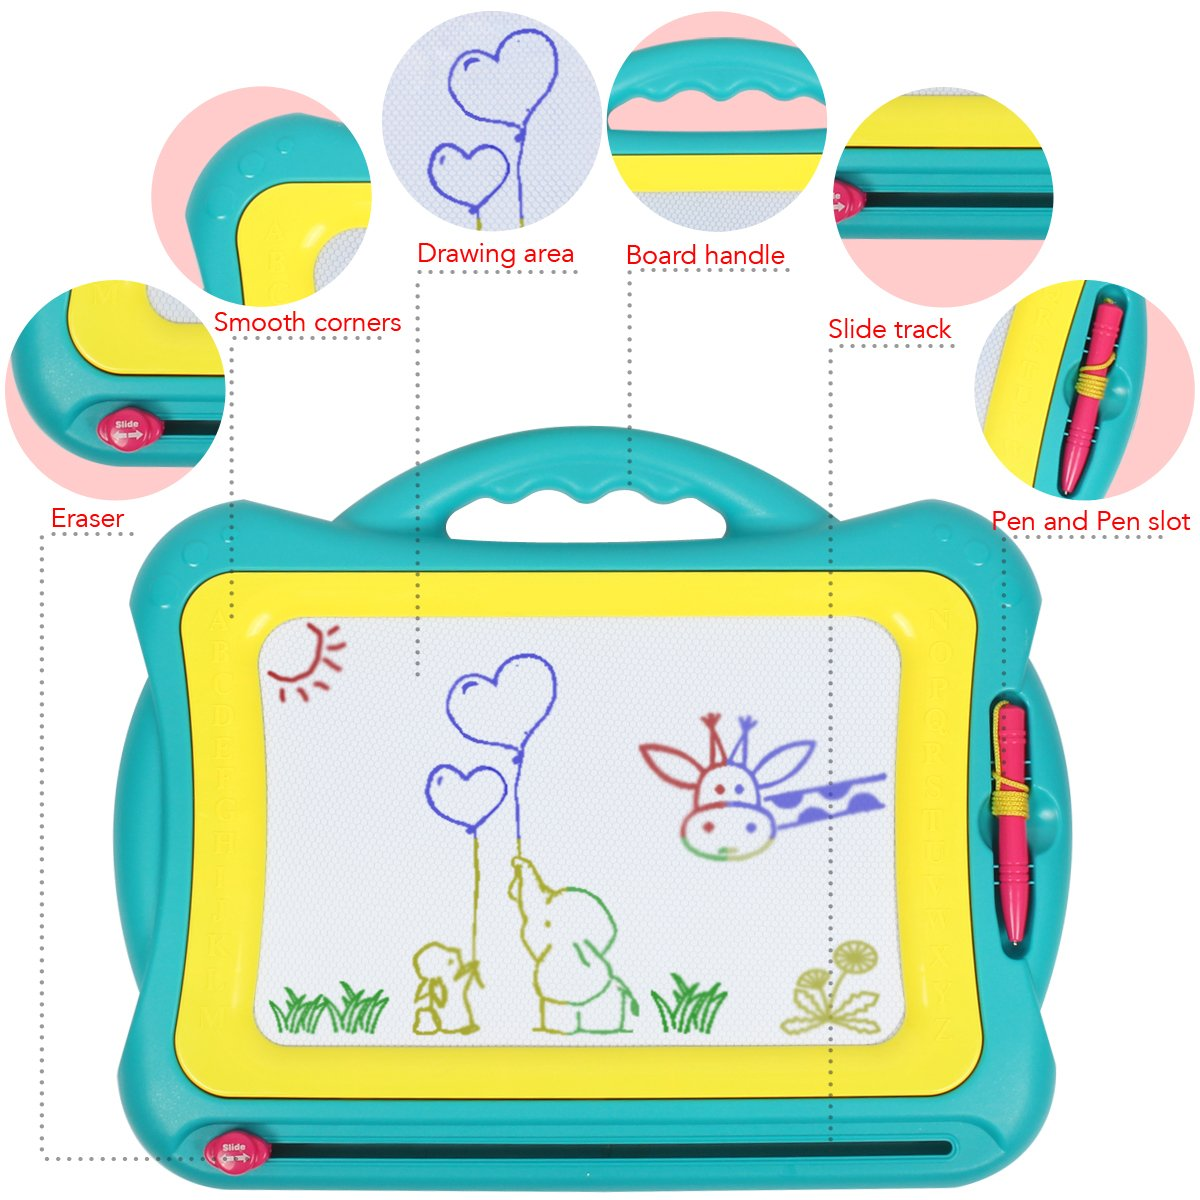 Green-Yellow Tomons Magnetic Drawing Board Assorted Colors Painting Sketching Pad for Toddler Boy Girl Kids Skill Development Colorful Erasable Magnet Writing Sketching Pad